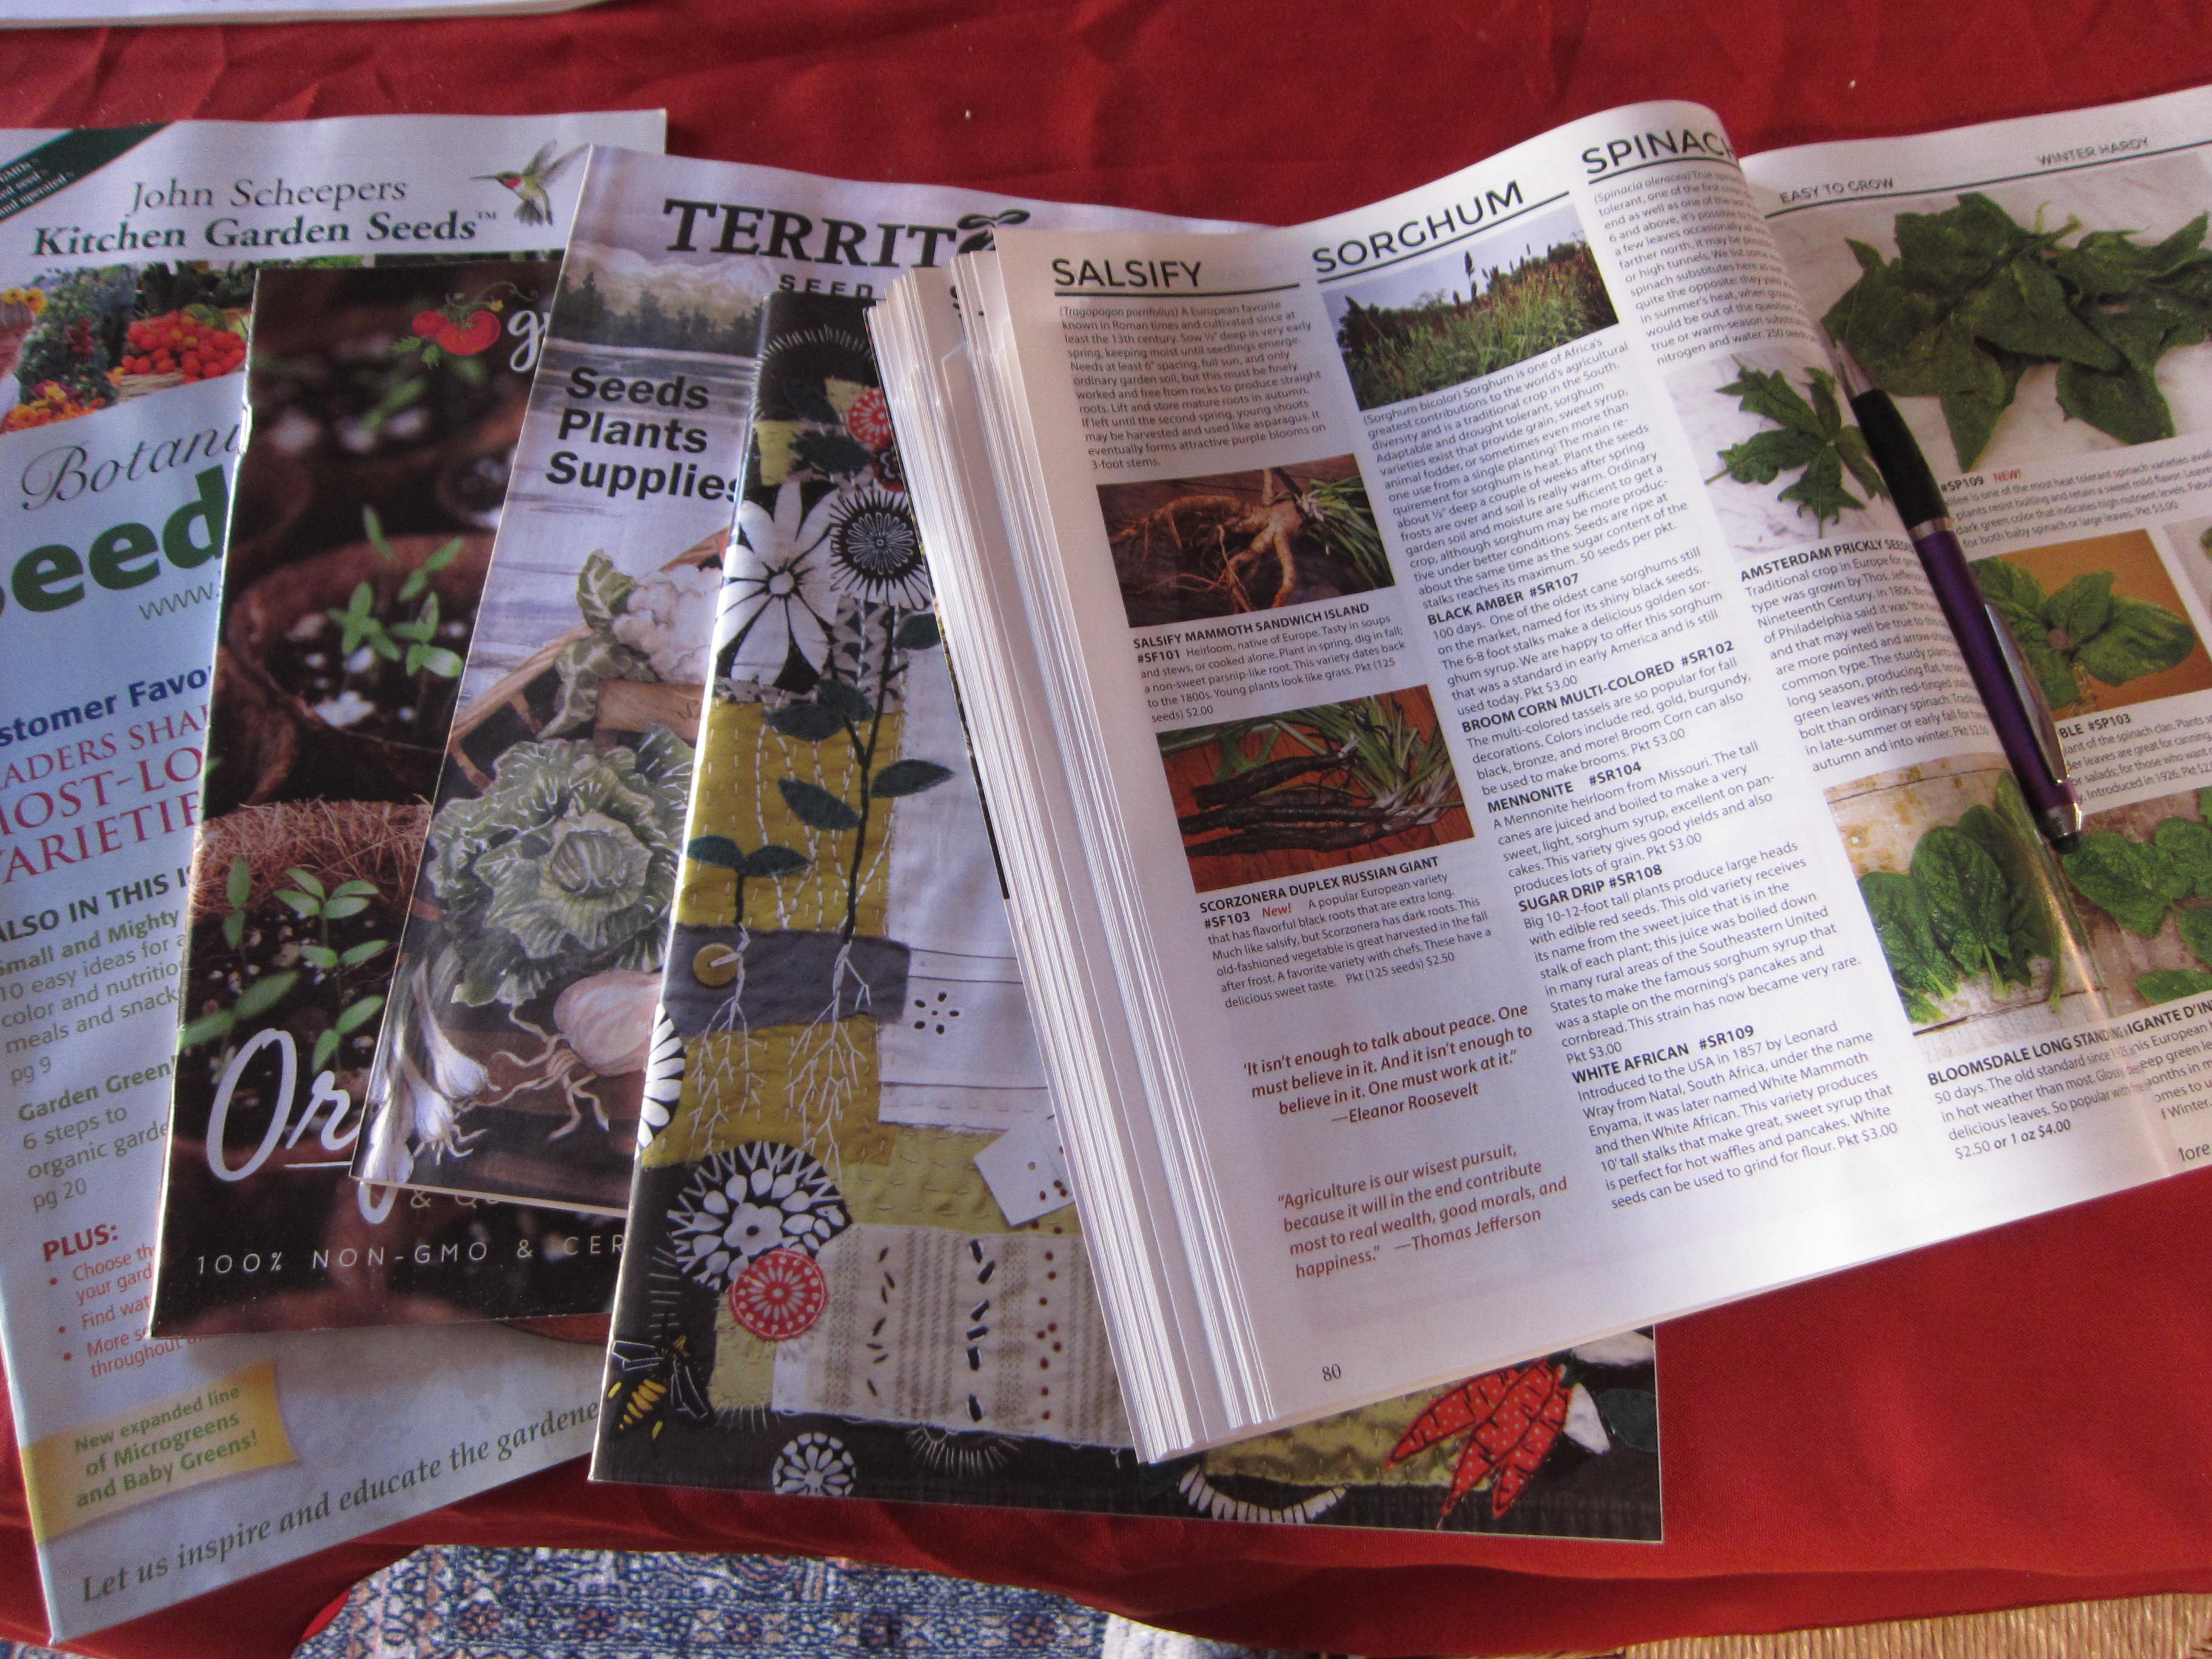 Indoor activities include perusing seed catalogs. Soon we'll be starting seeds for warm-season crops.